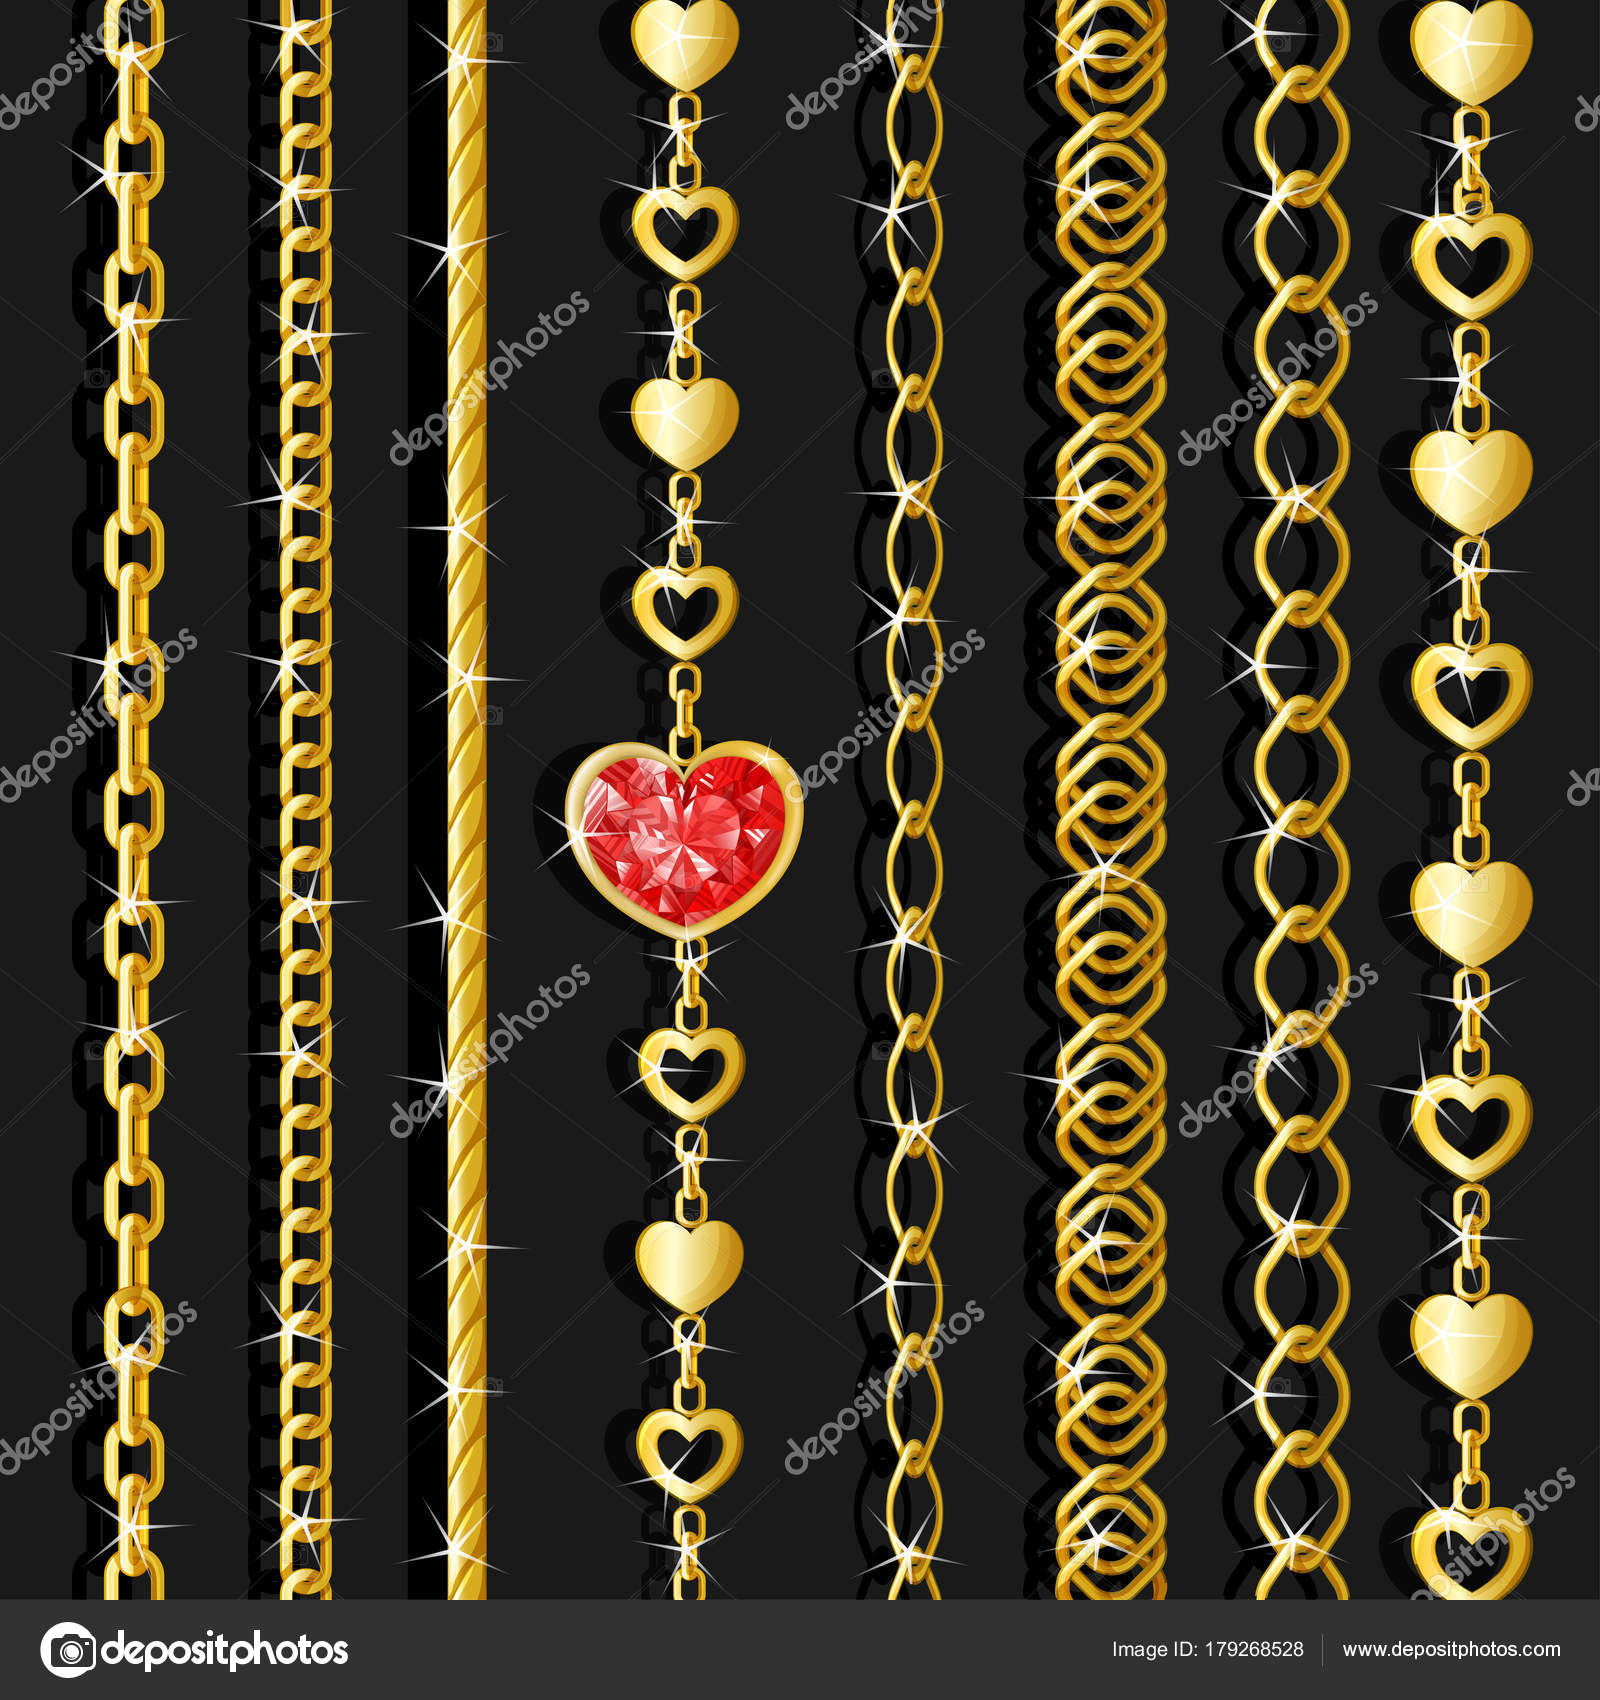 central by photo golden kept element chains image stock a bigstock toghether chain